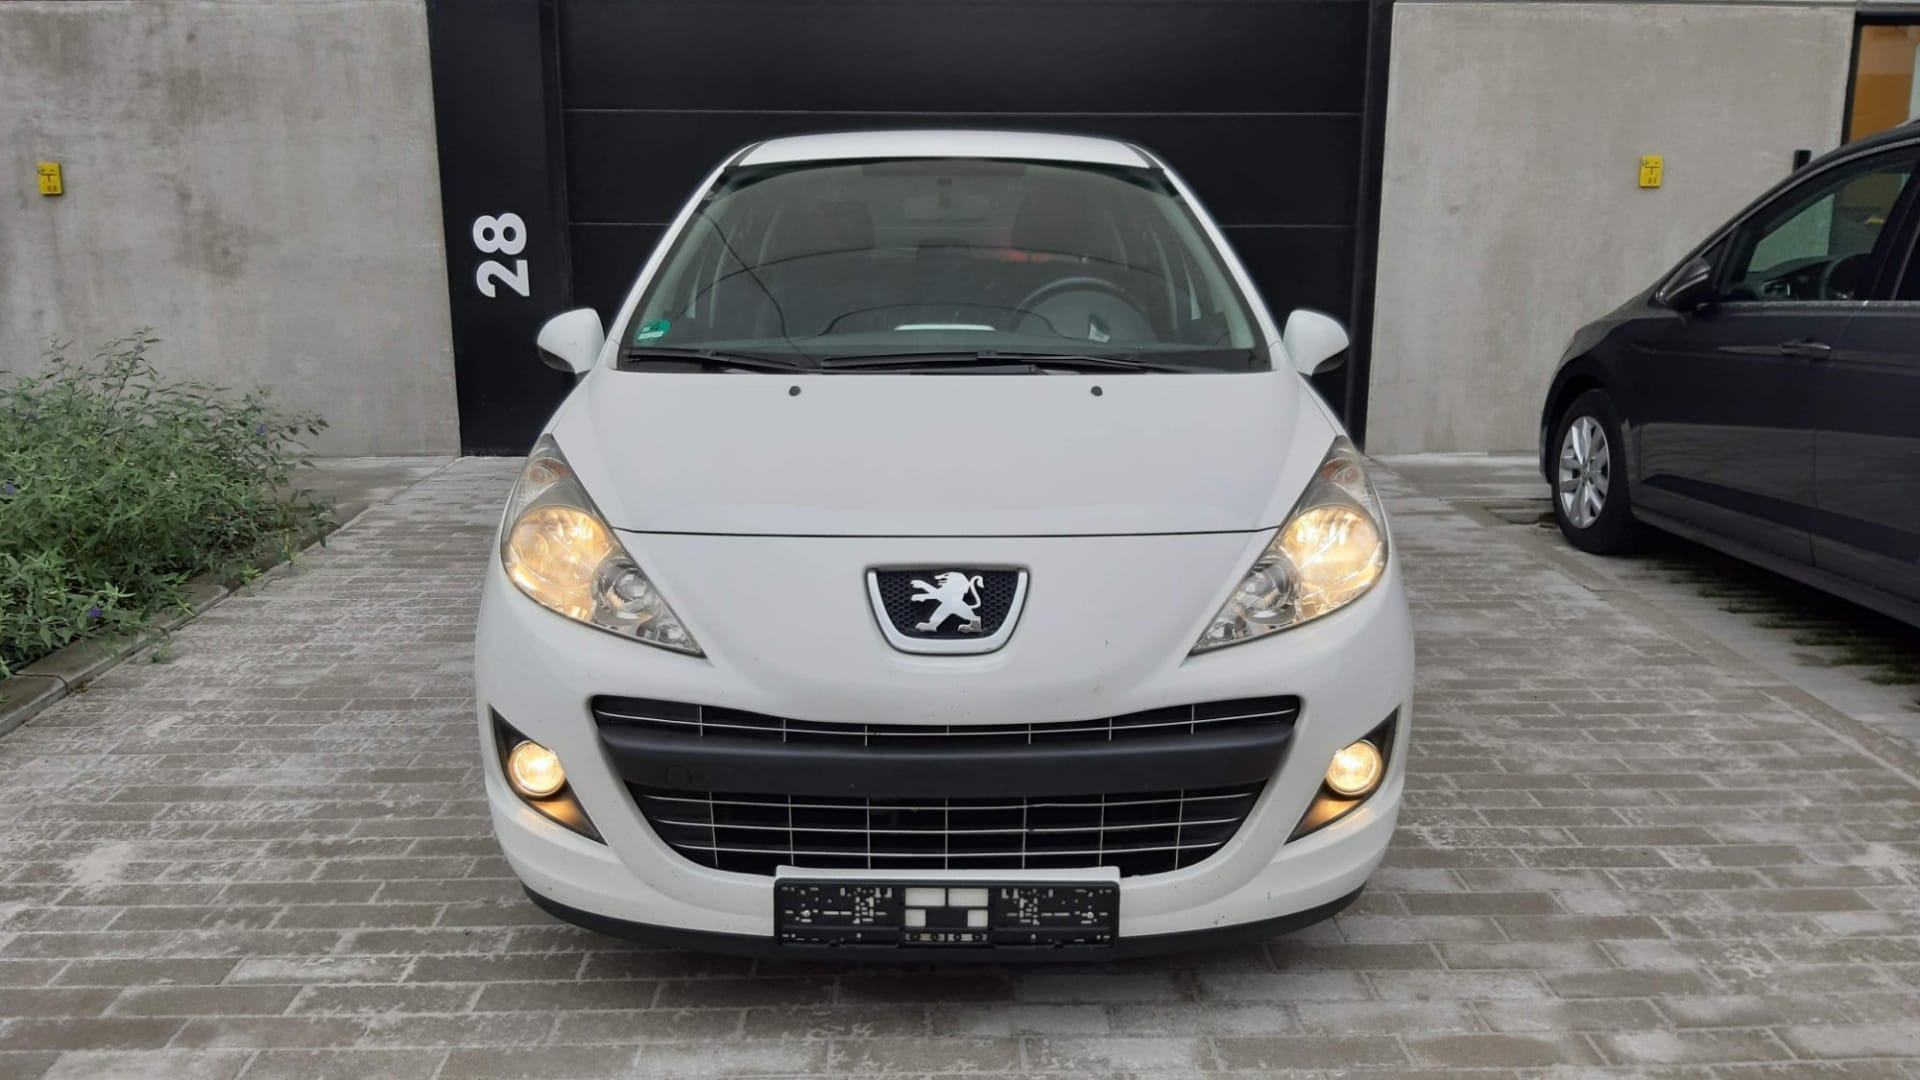 Peugeot 207 1.4 (2012) Active Business